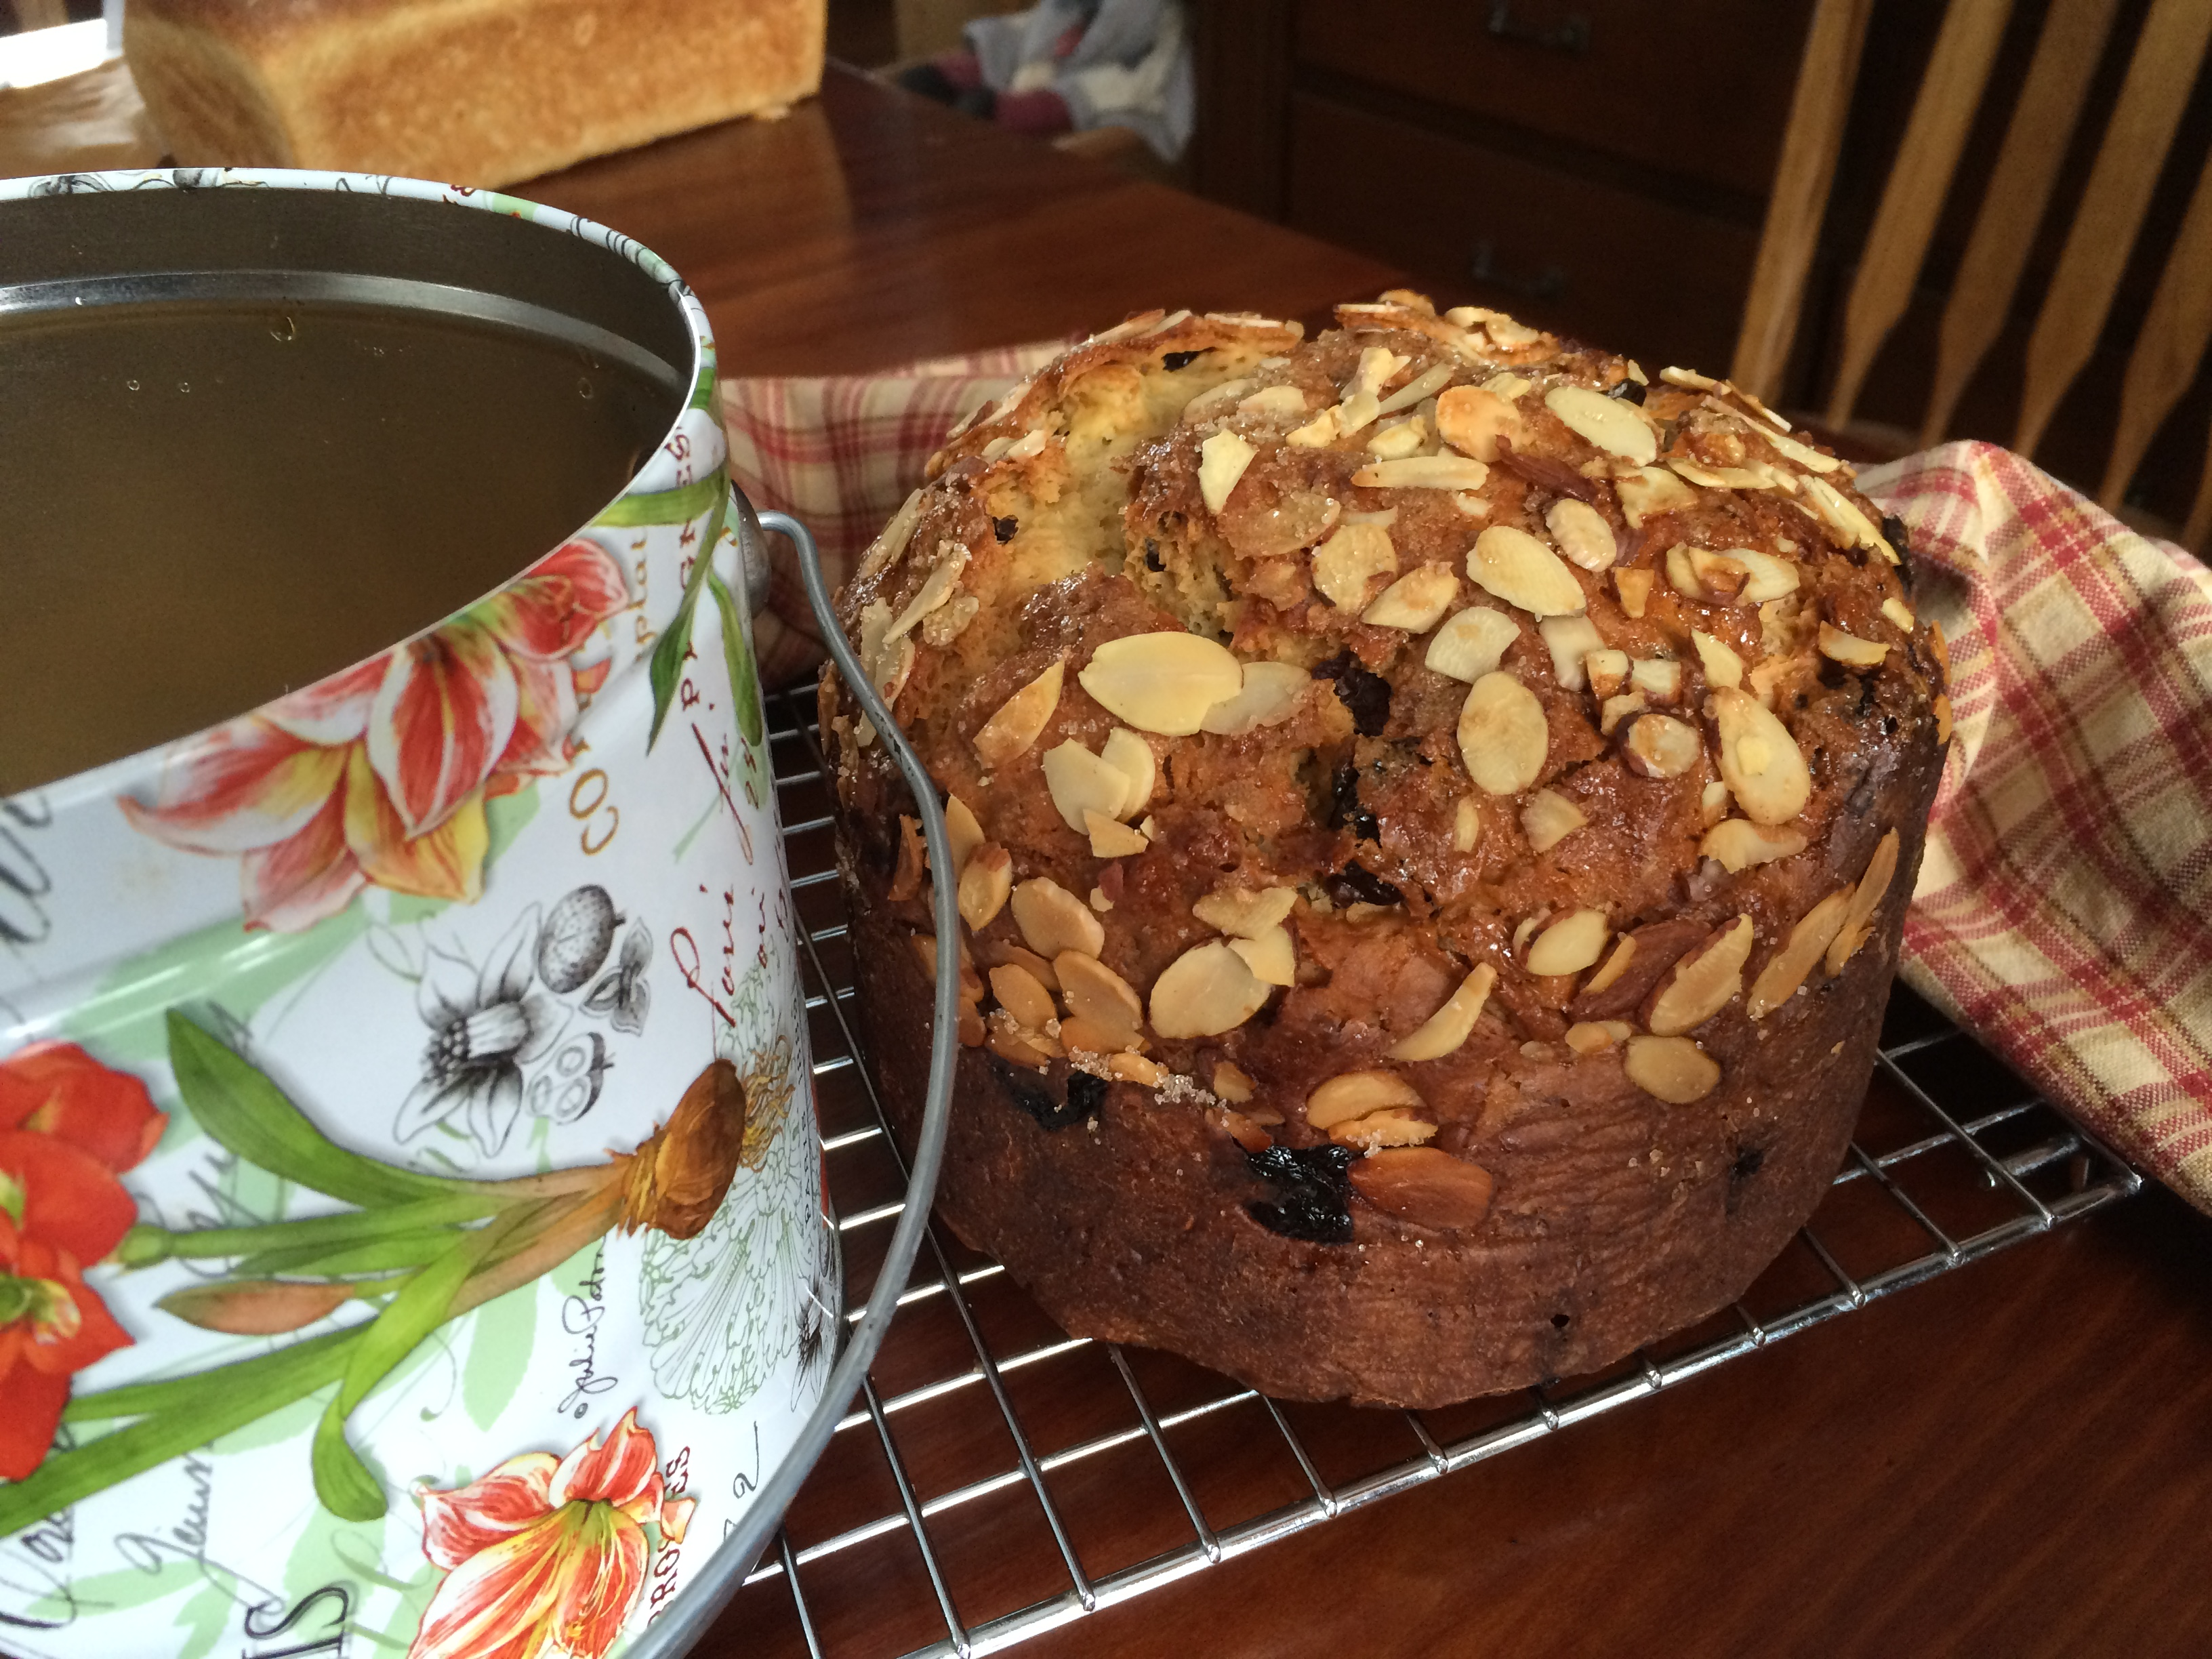 My panettone next to the cookie bucket I baked it in!